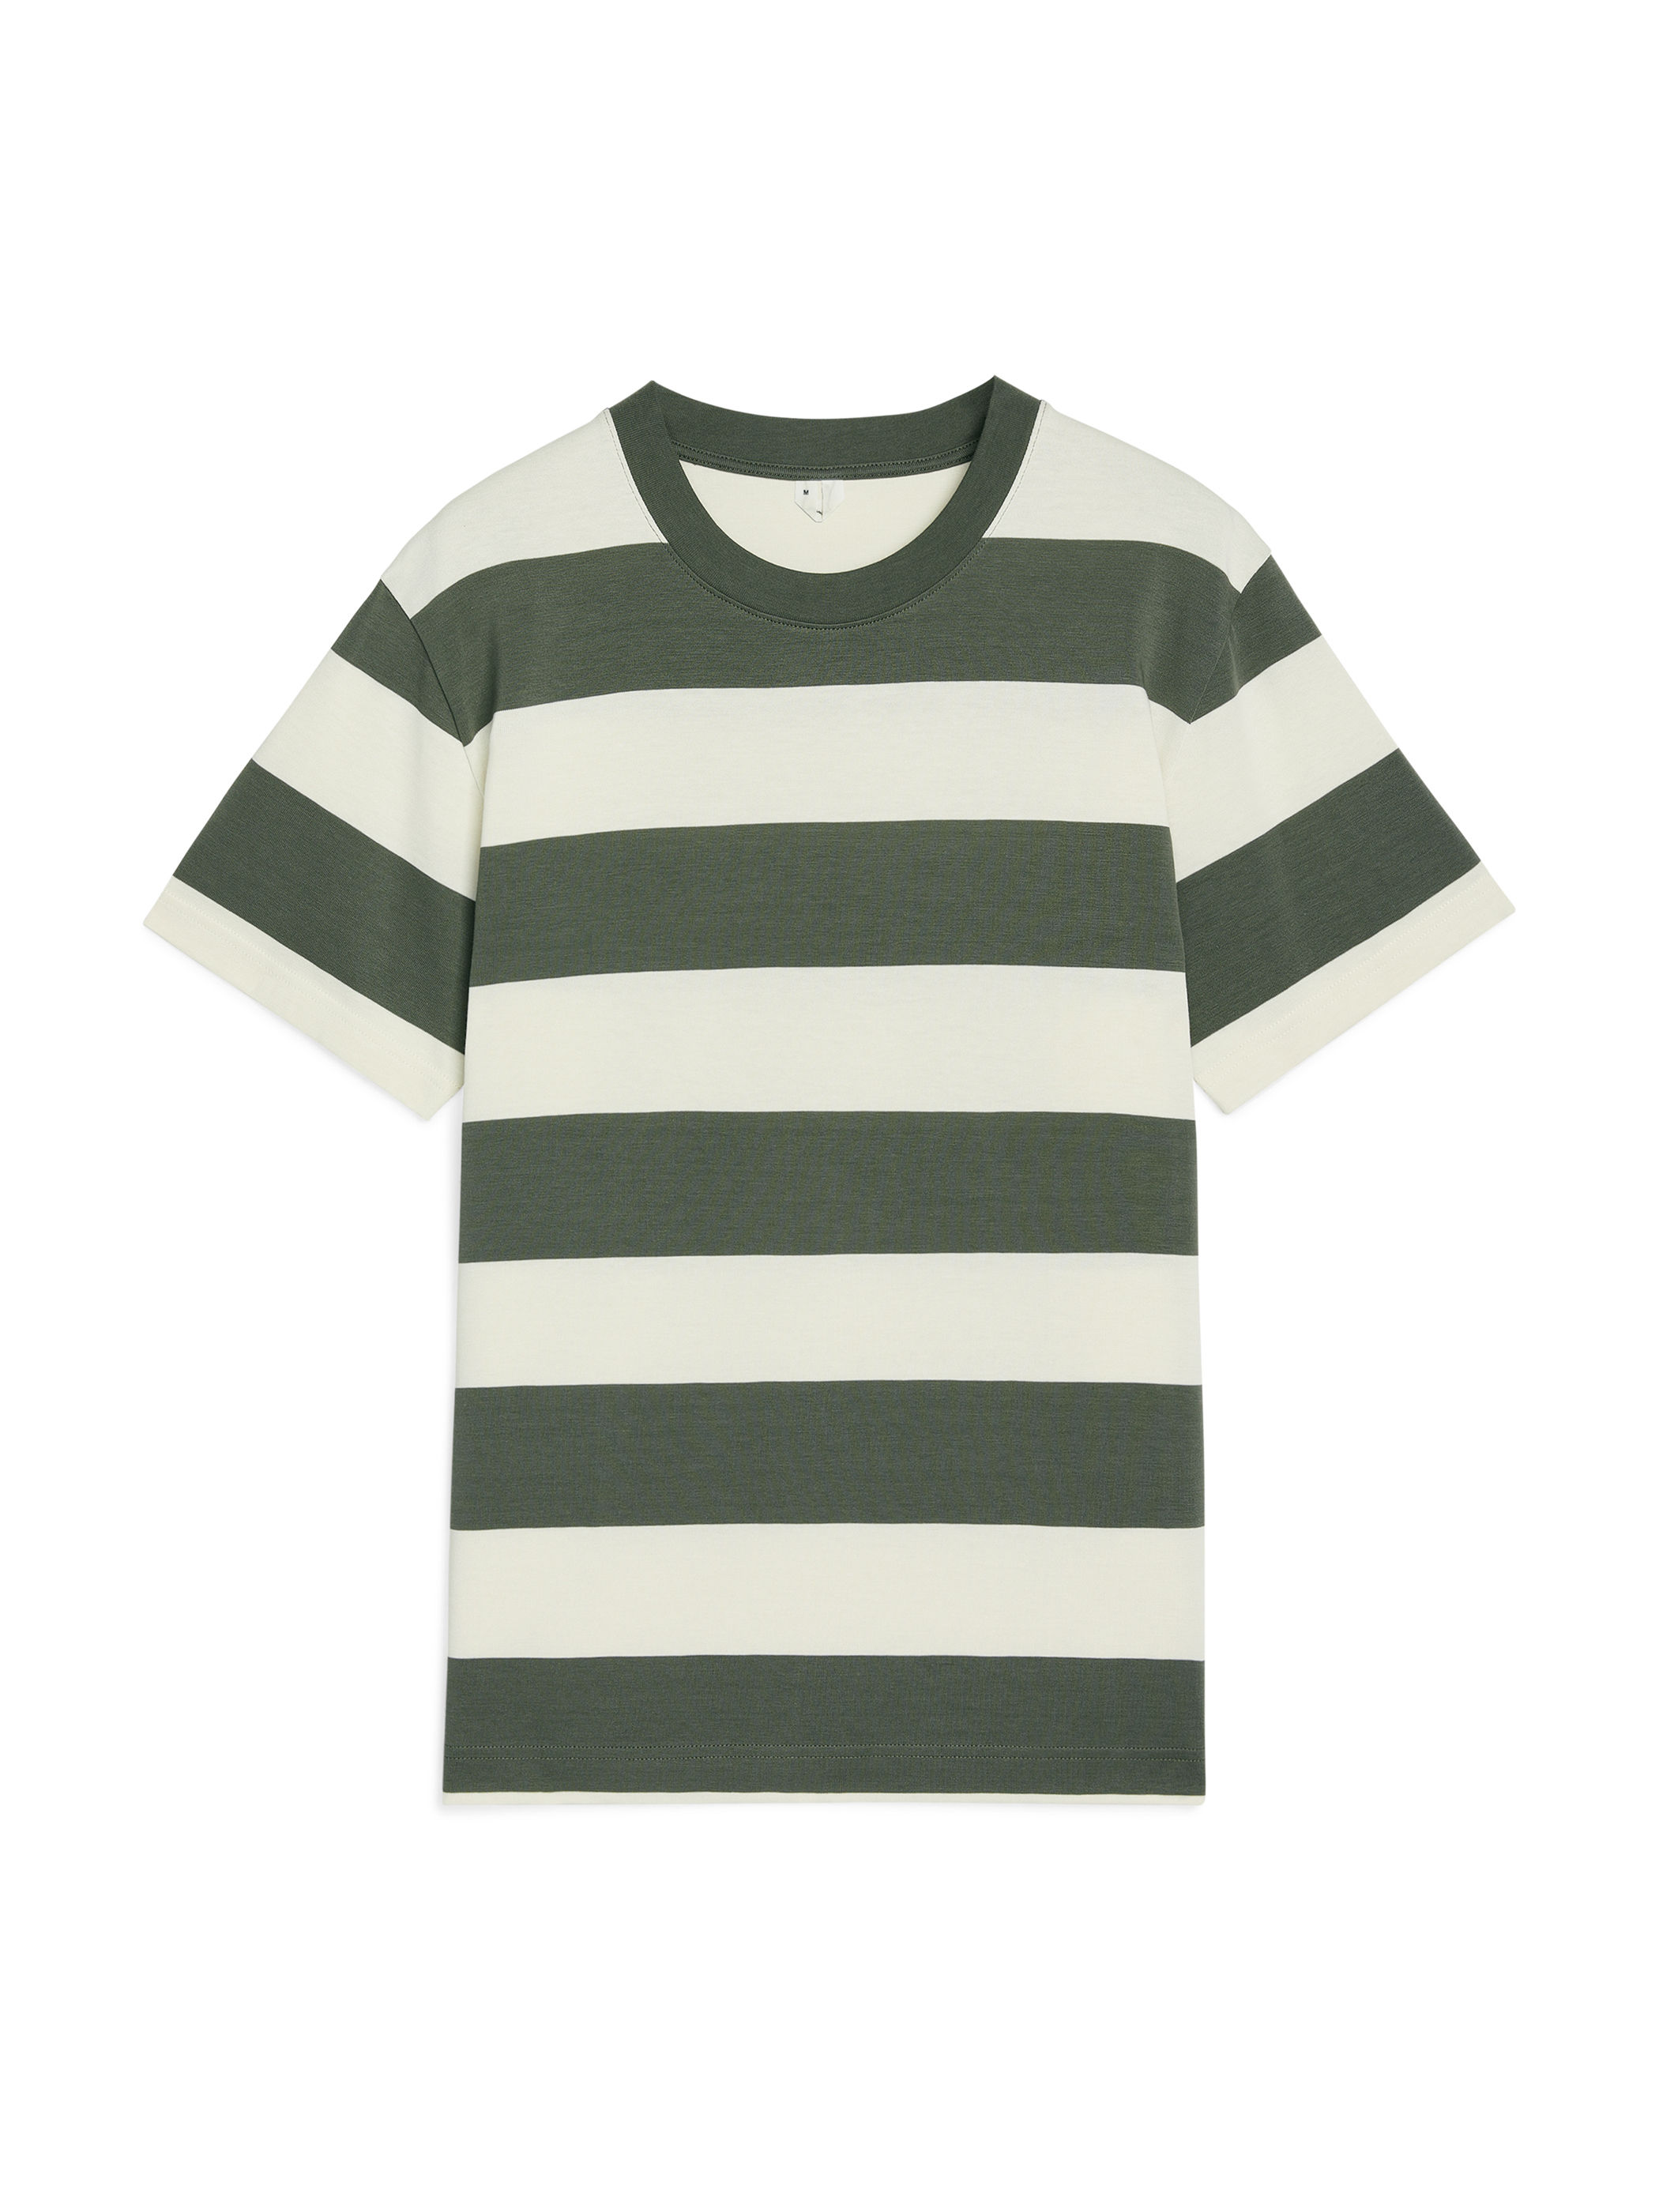 Fabric Swatch image of Arket block stripe cotton t-shirt in green